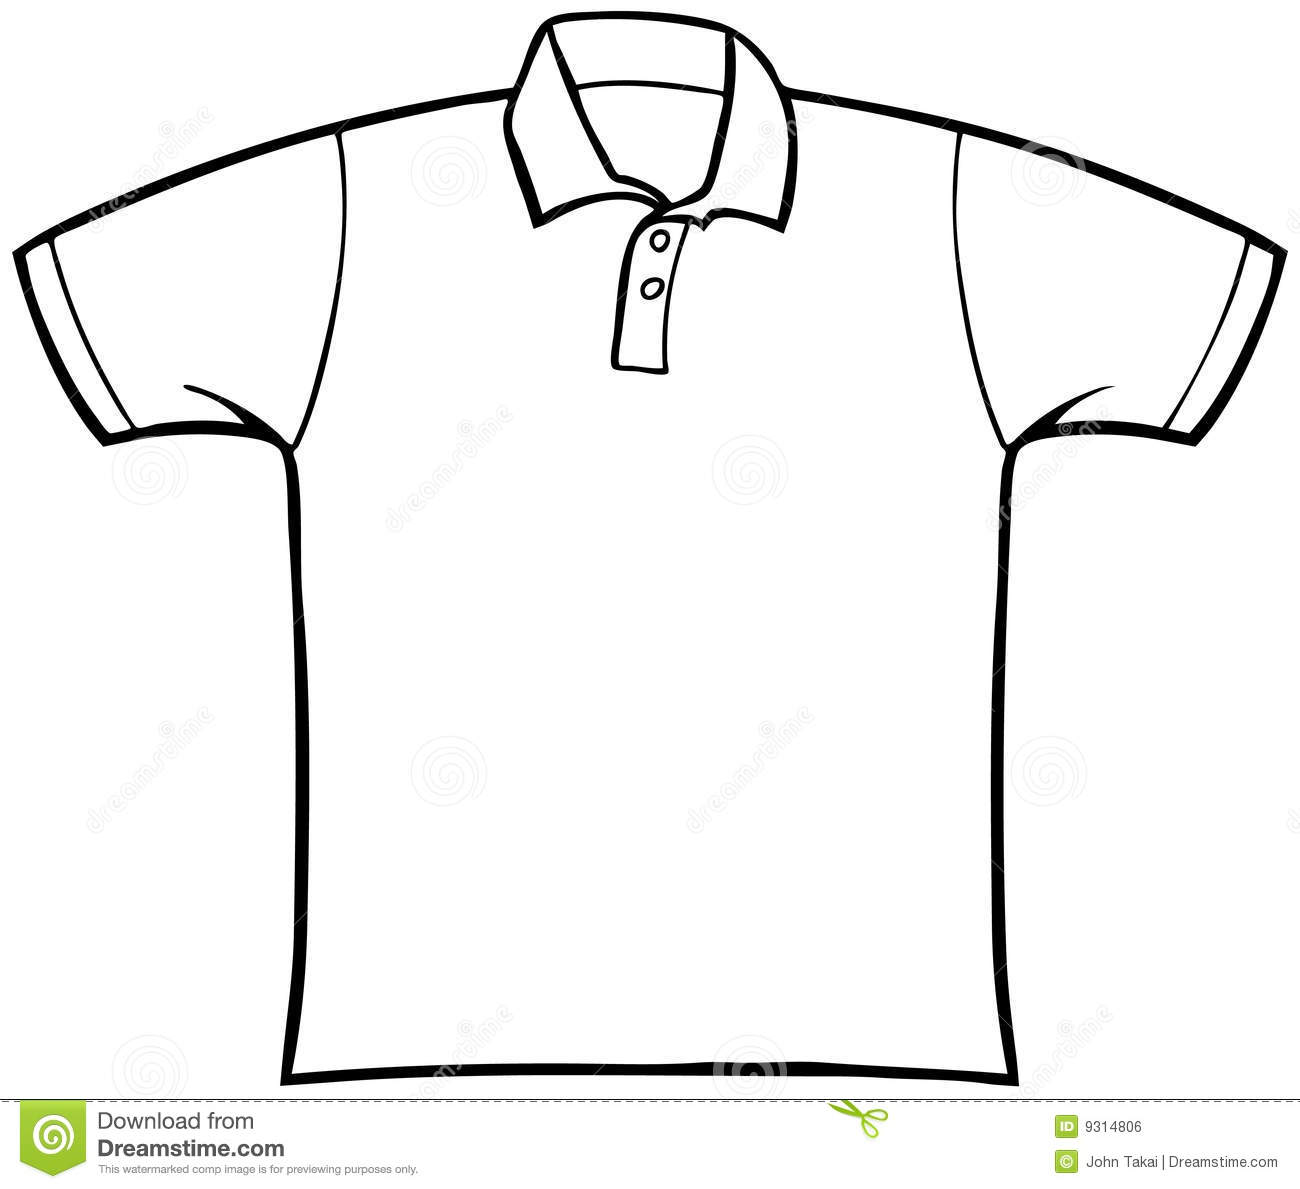 Shirt And Pants Clipart Black And White.